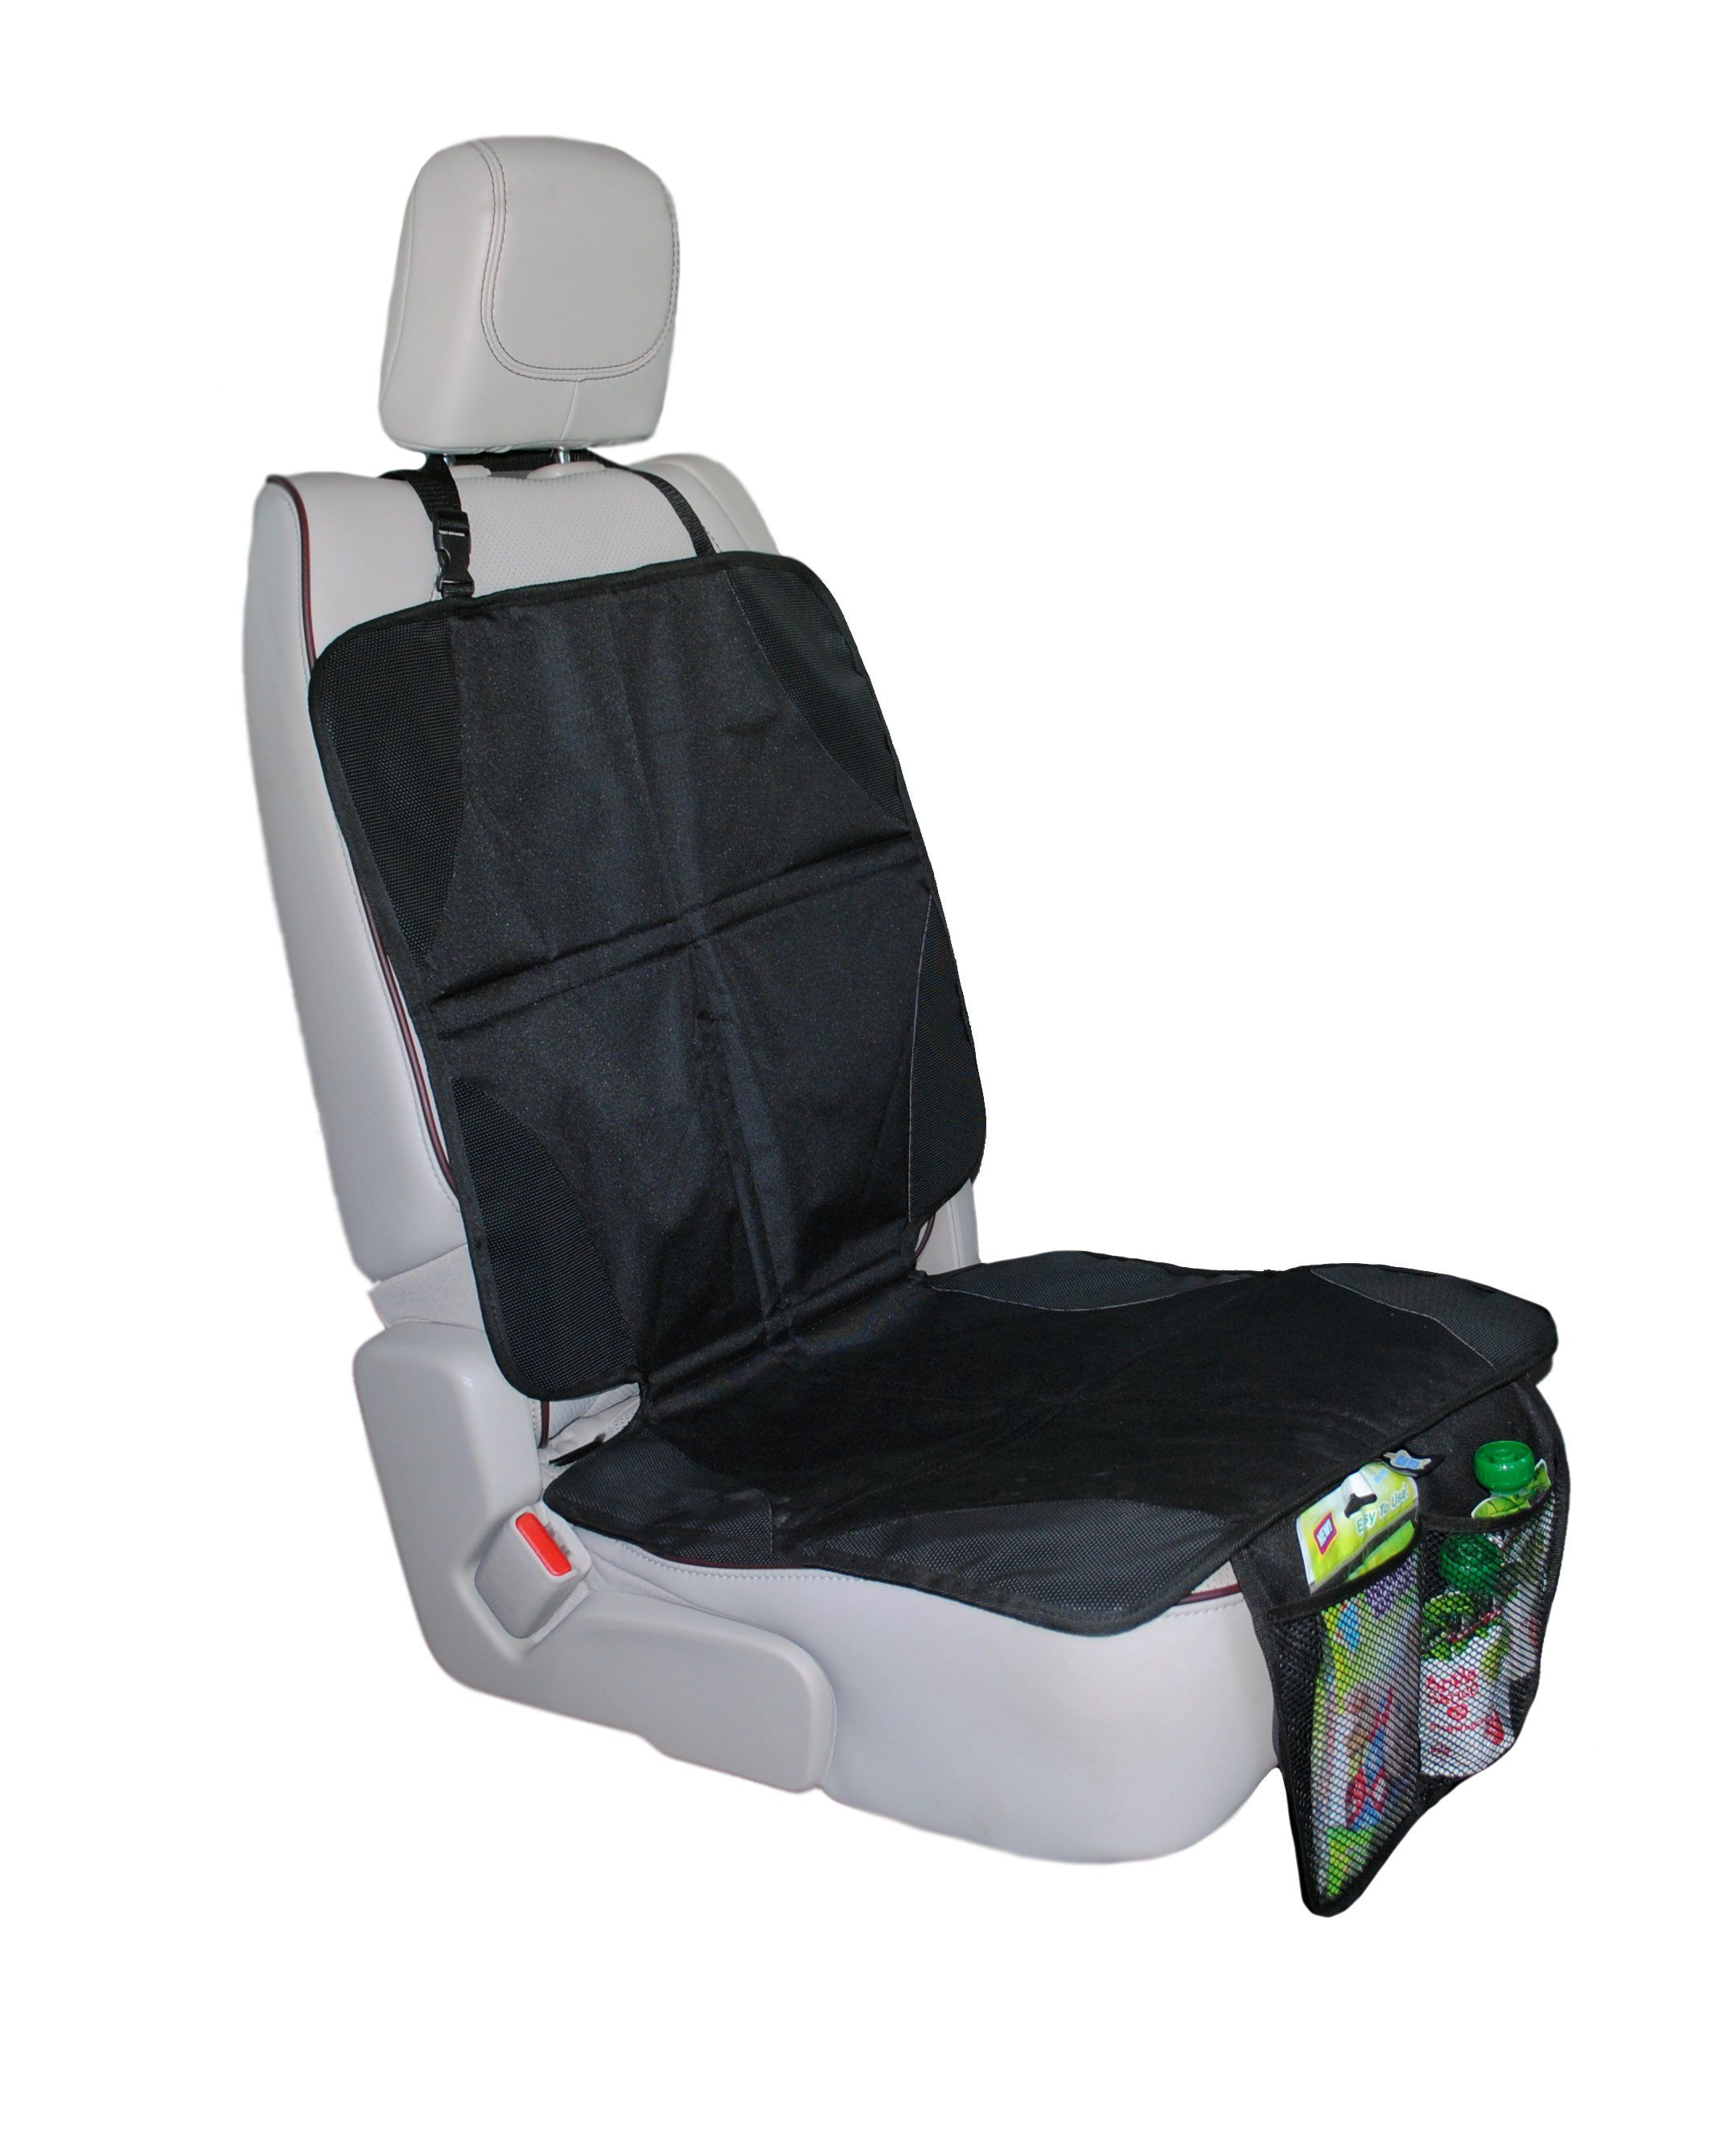 Awesome Baby Car Seat Protector Products Baby Car Seats Car Dailytribune Chair Design For Home Dailytribuneorg